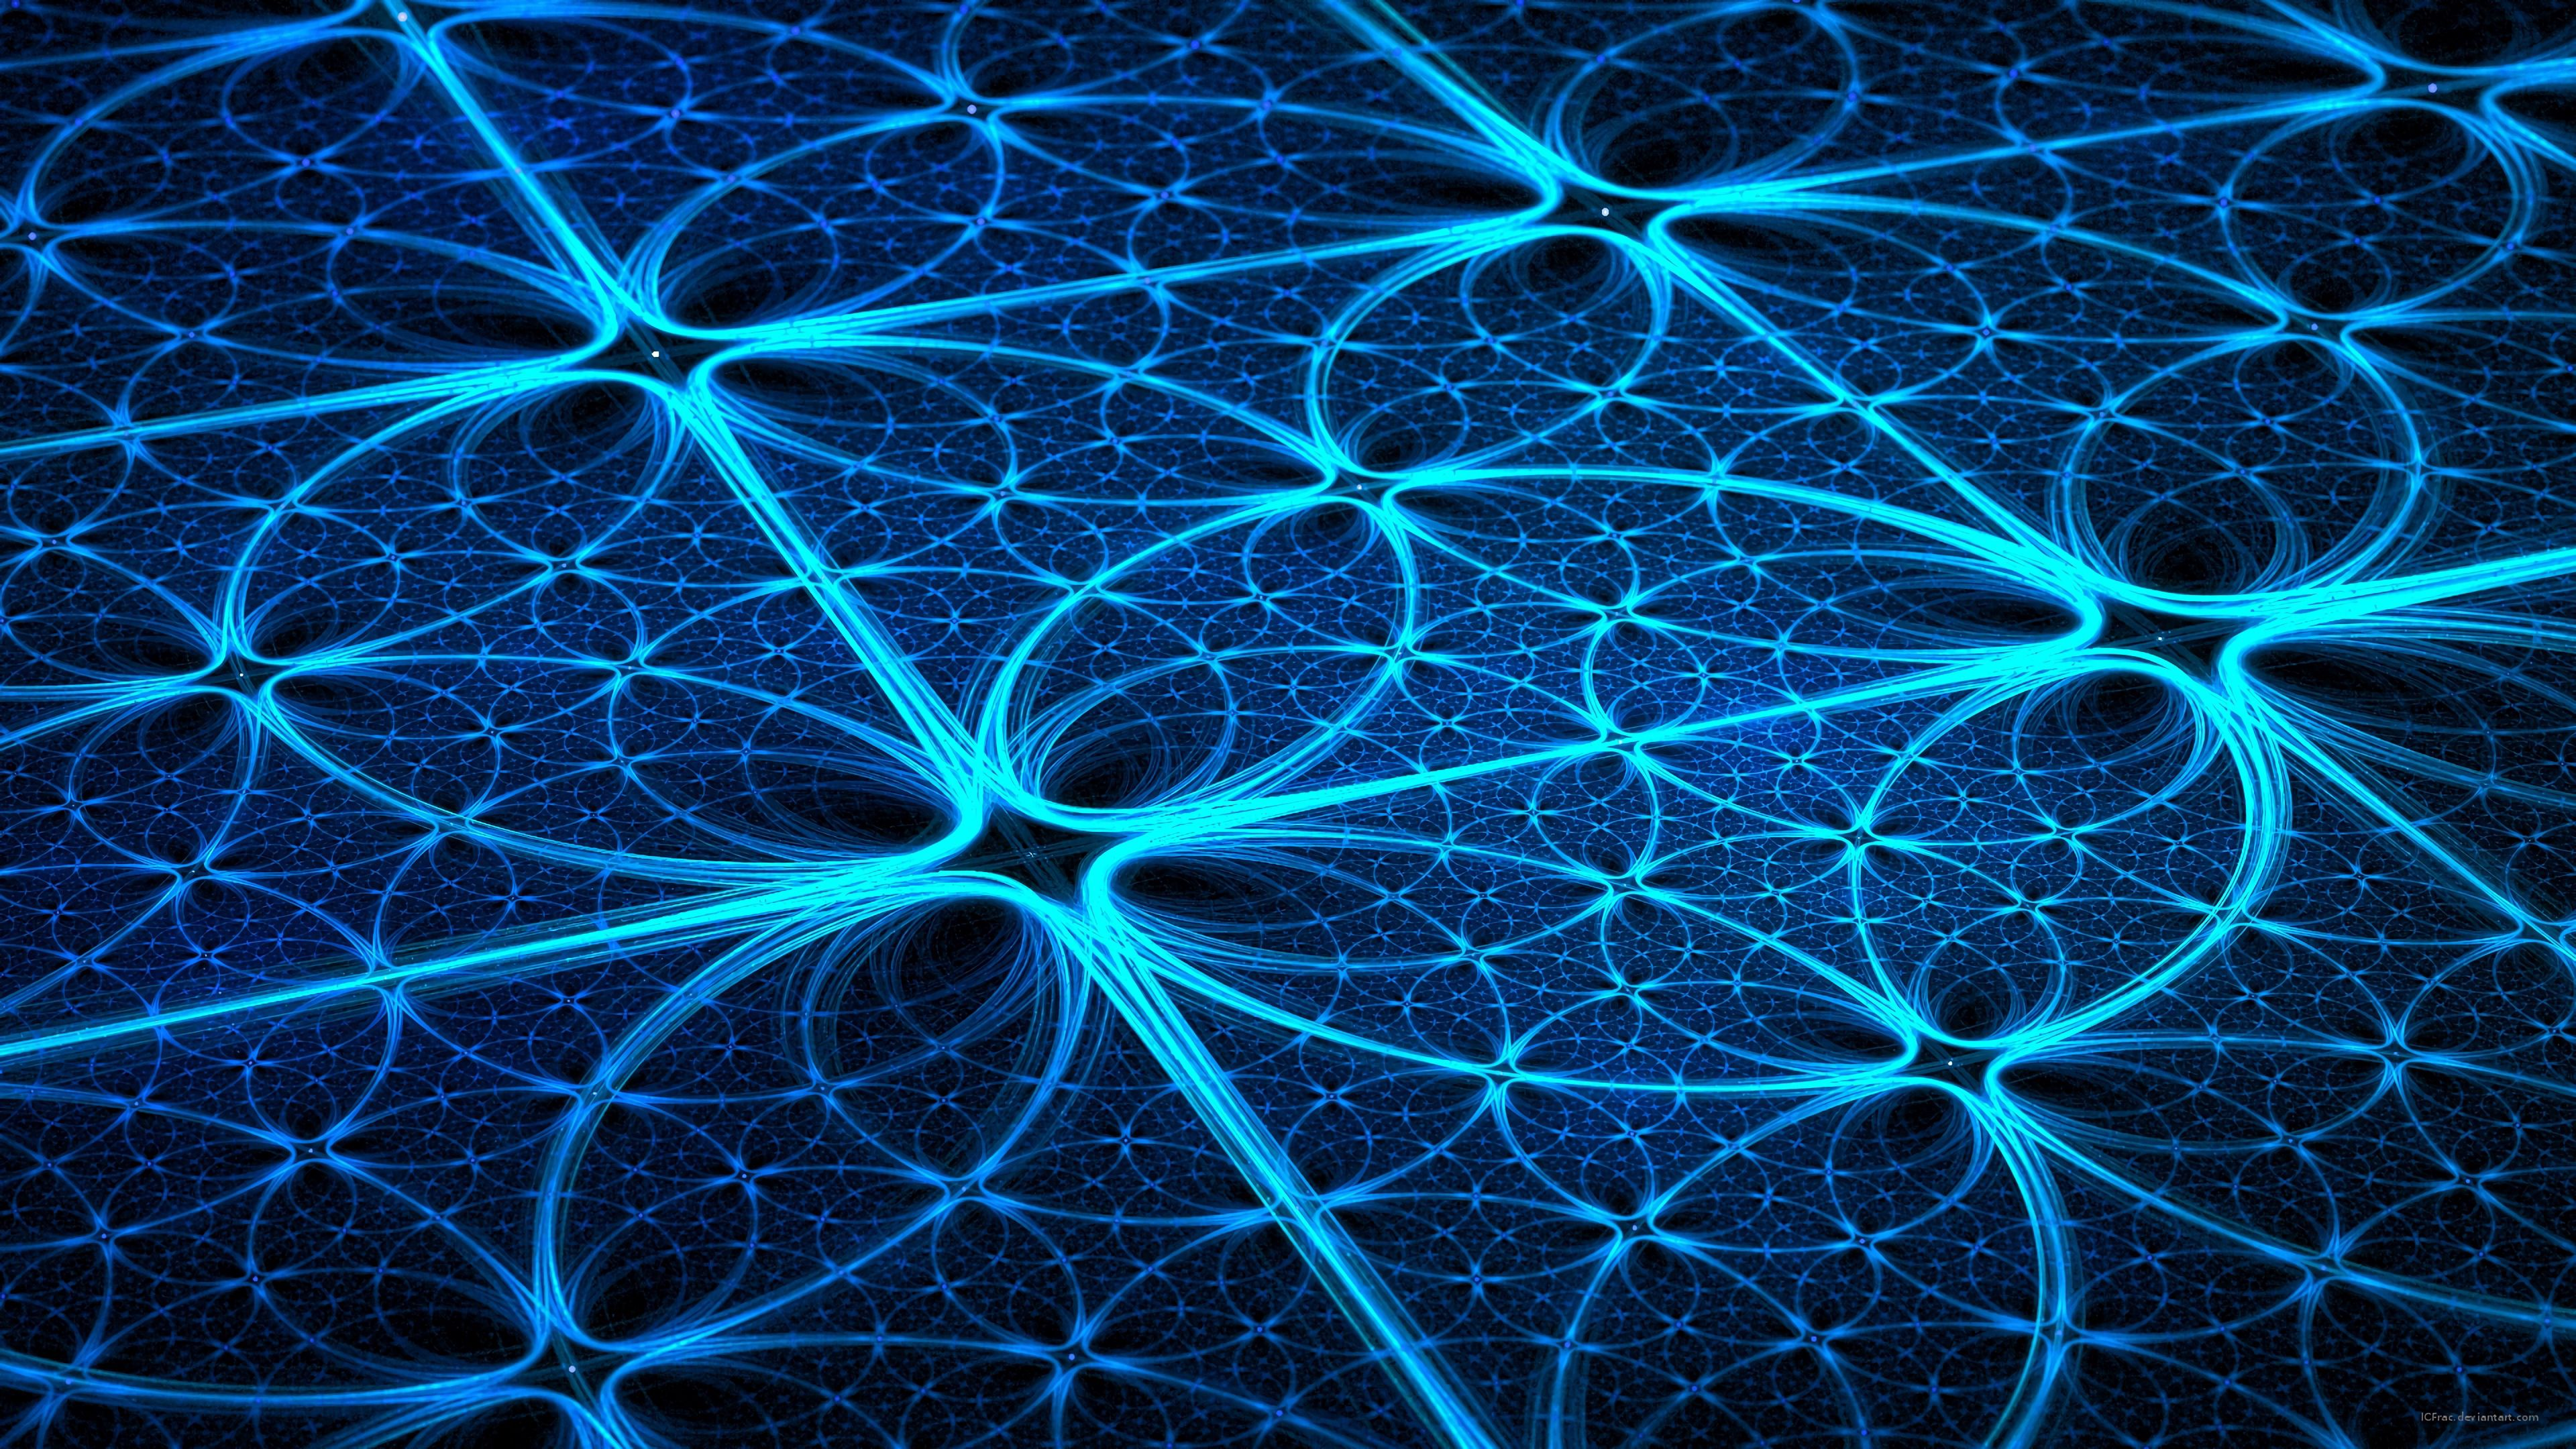 115533 download wallpaper Abstract, Fractal, Pattern, Confused, Intricate, Glow screensavers and pictures for free